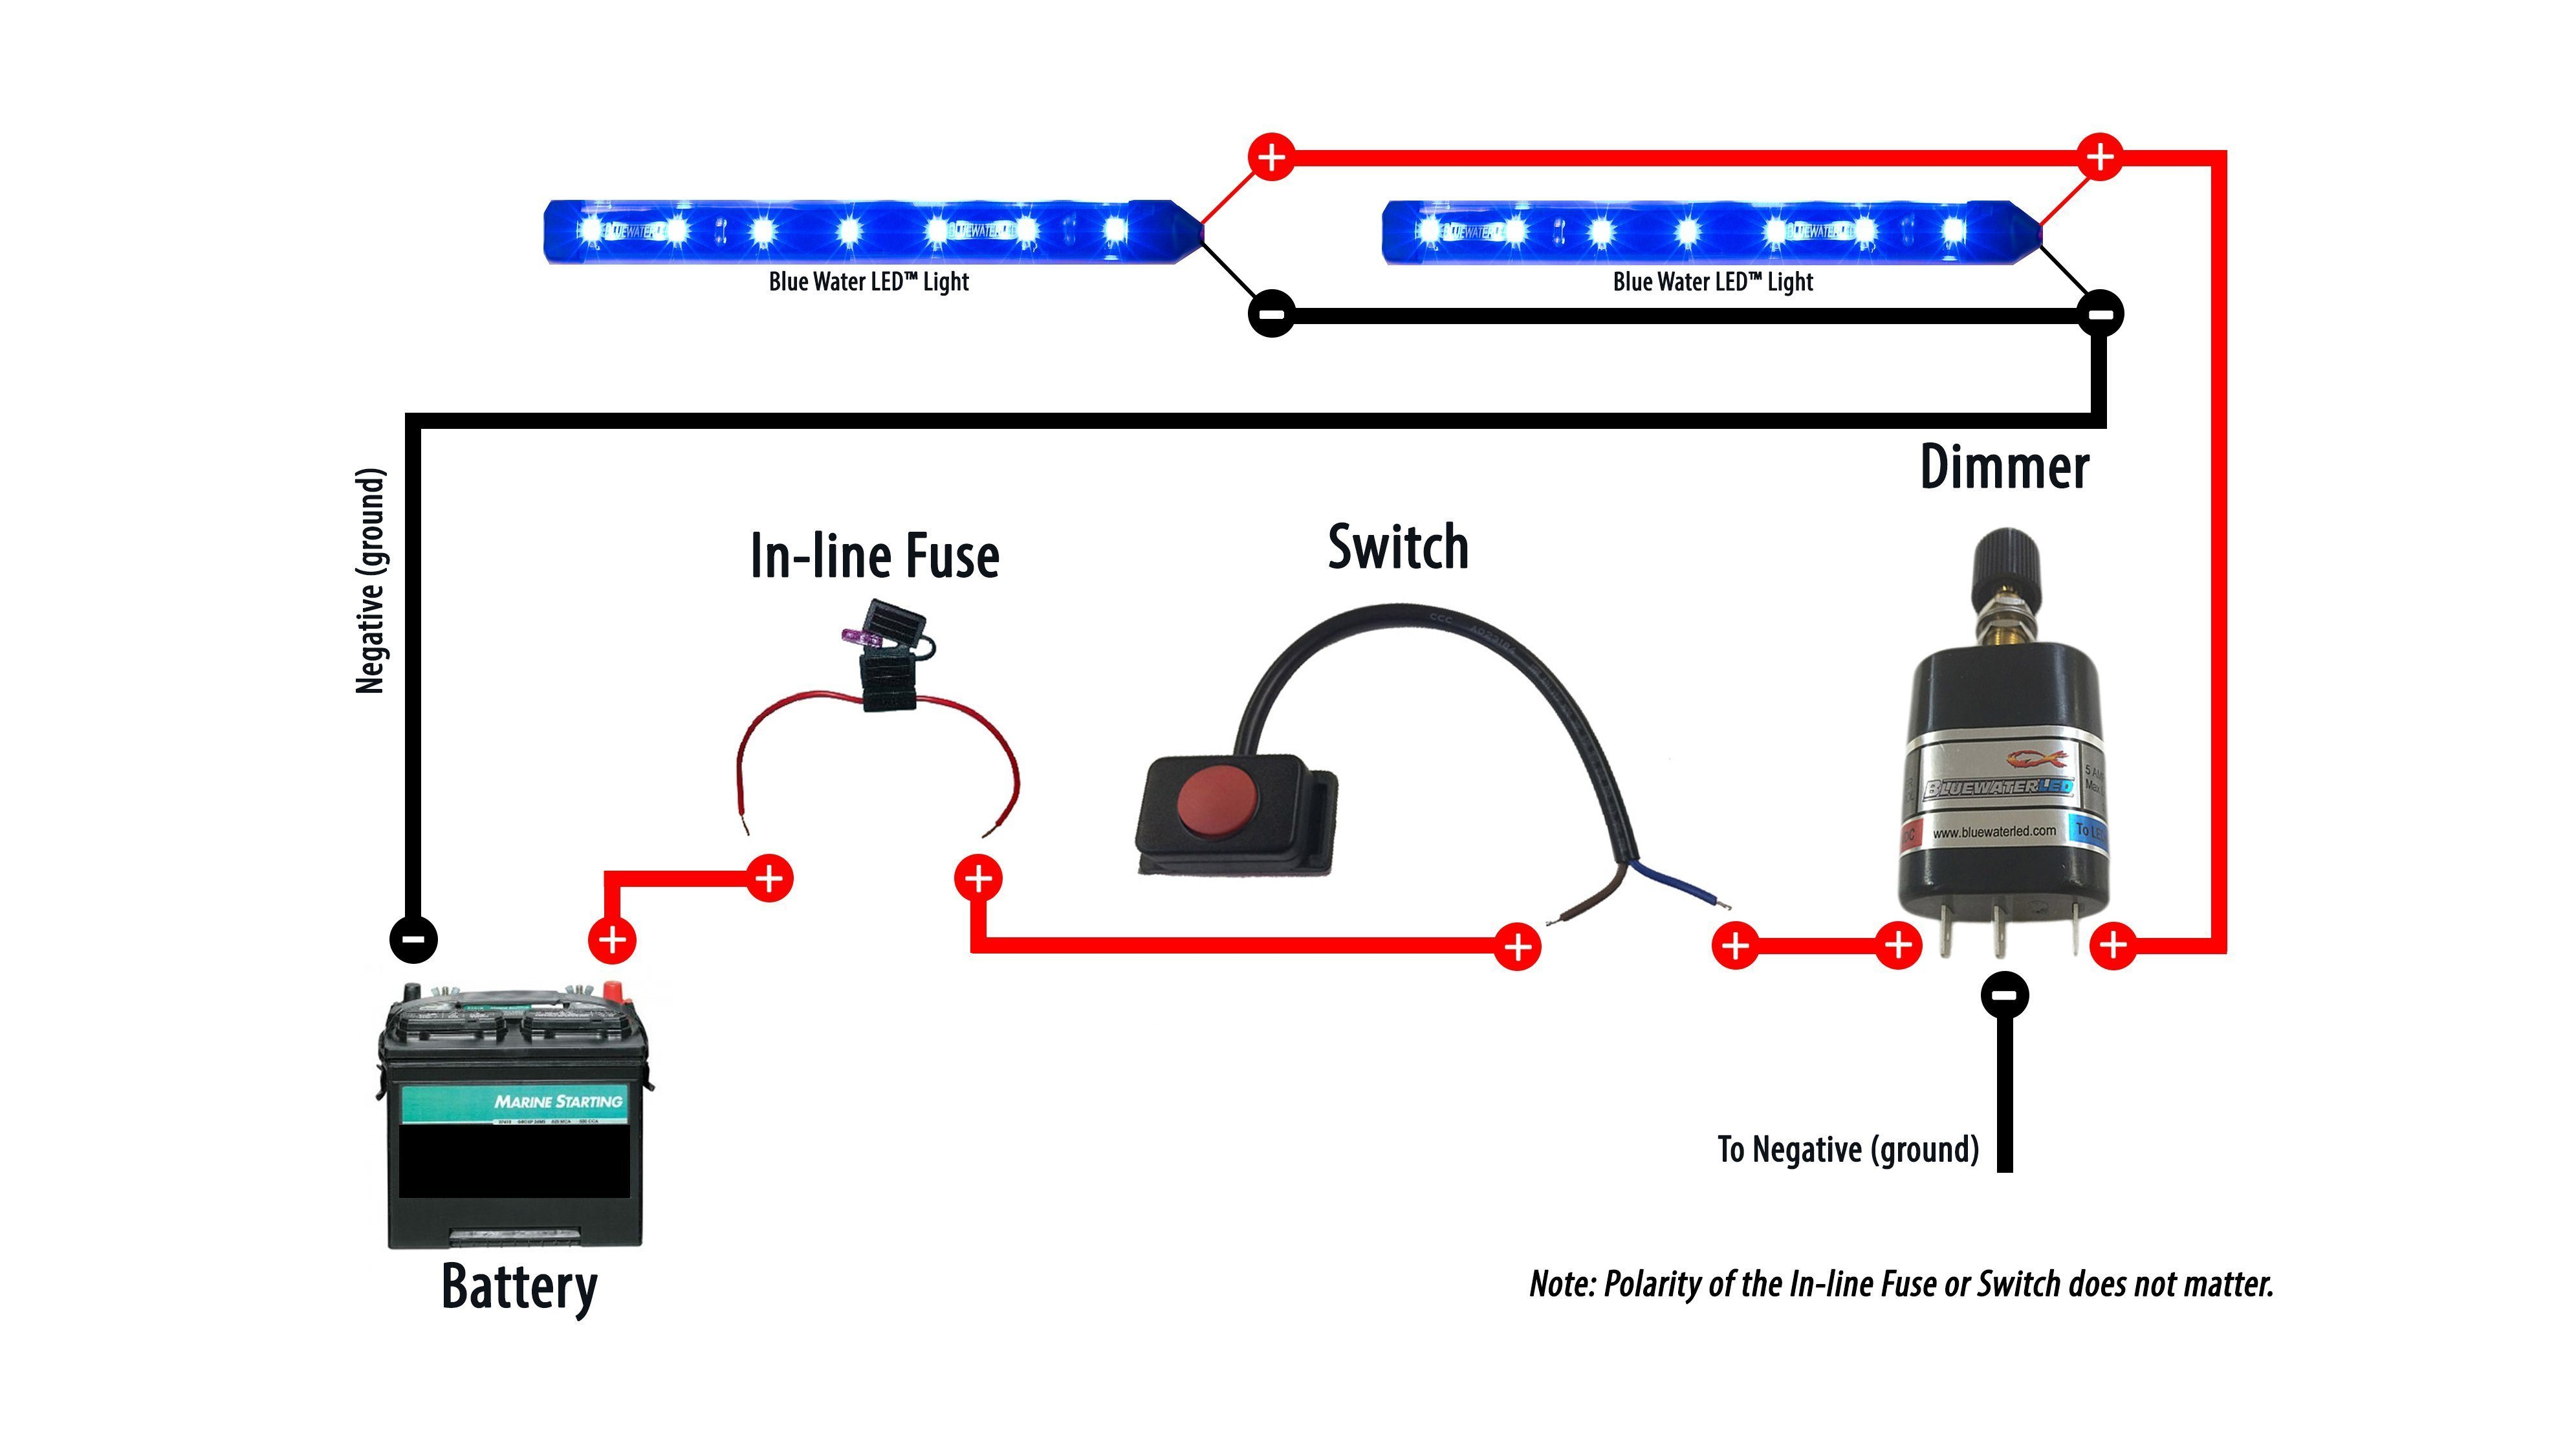 push button wire diagram rr 5457  led lights for boat wiring diagrams download diagram  led lights for boat wiring diagrams